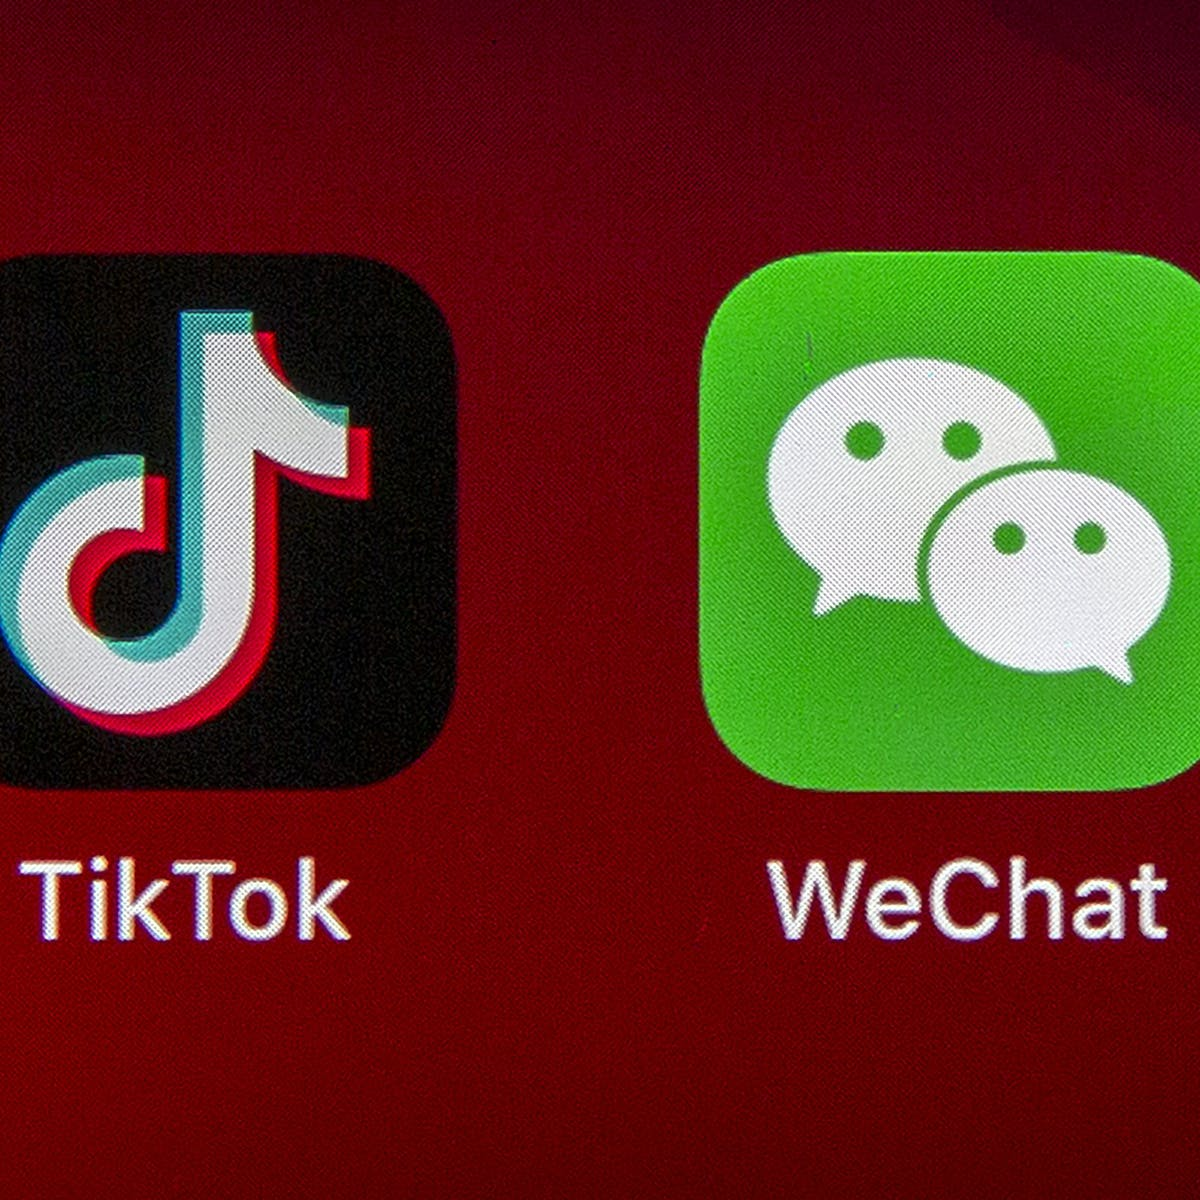 The Us Has Lots To Lose And Little To Gain By Banning Tiktok And Wechat Images photos vector graphics illustrations videos. banning tiktok and wechat